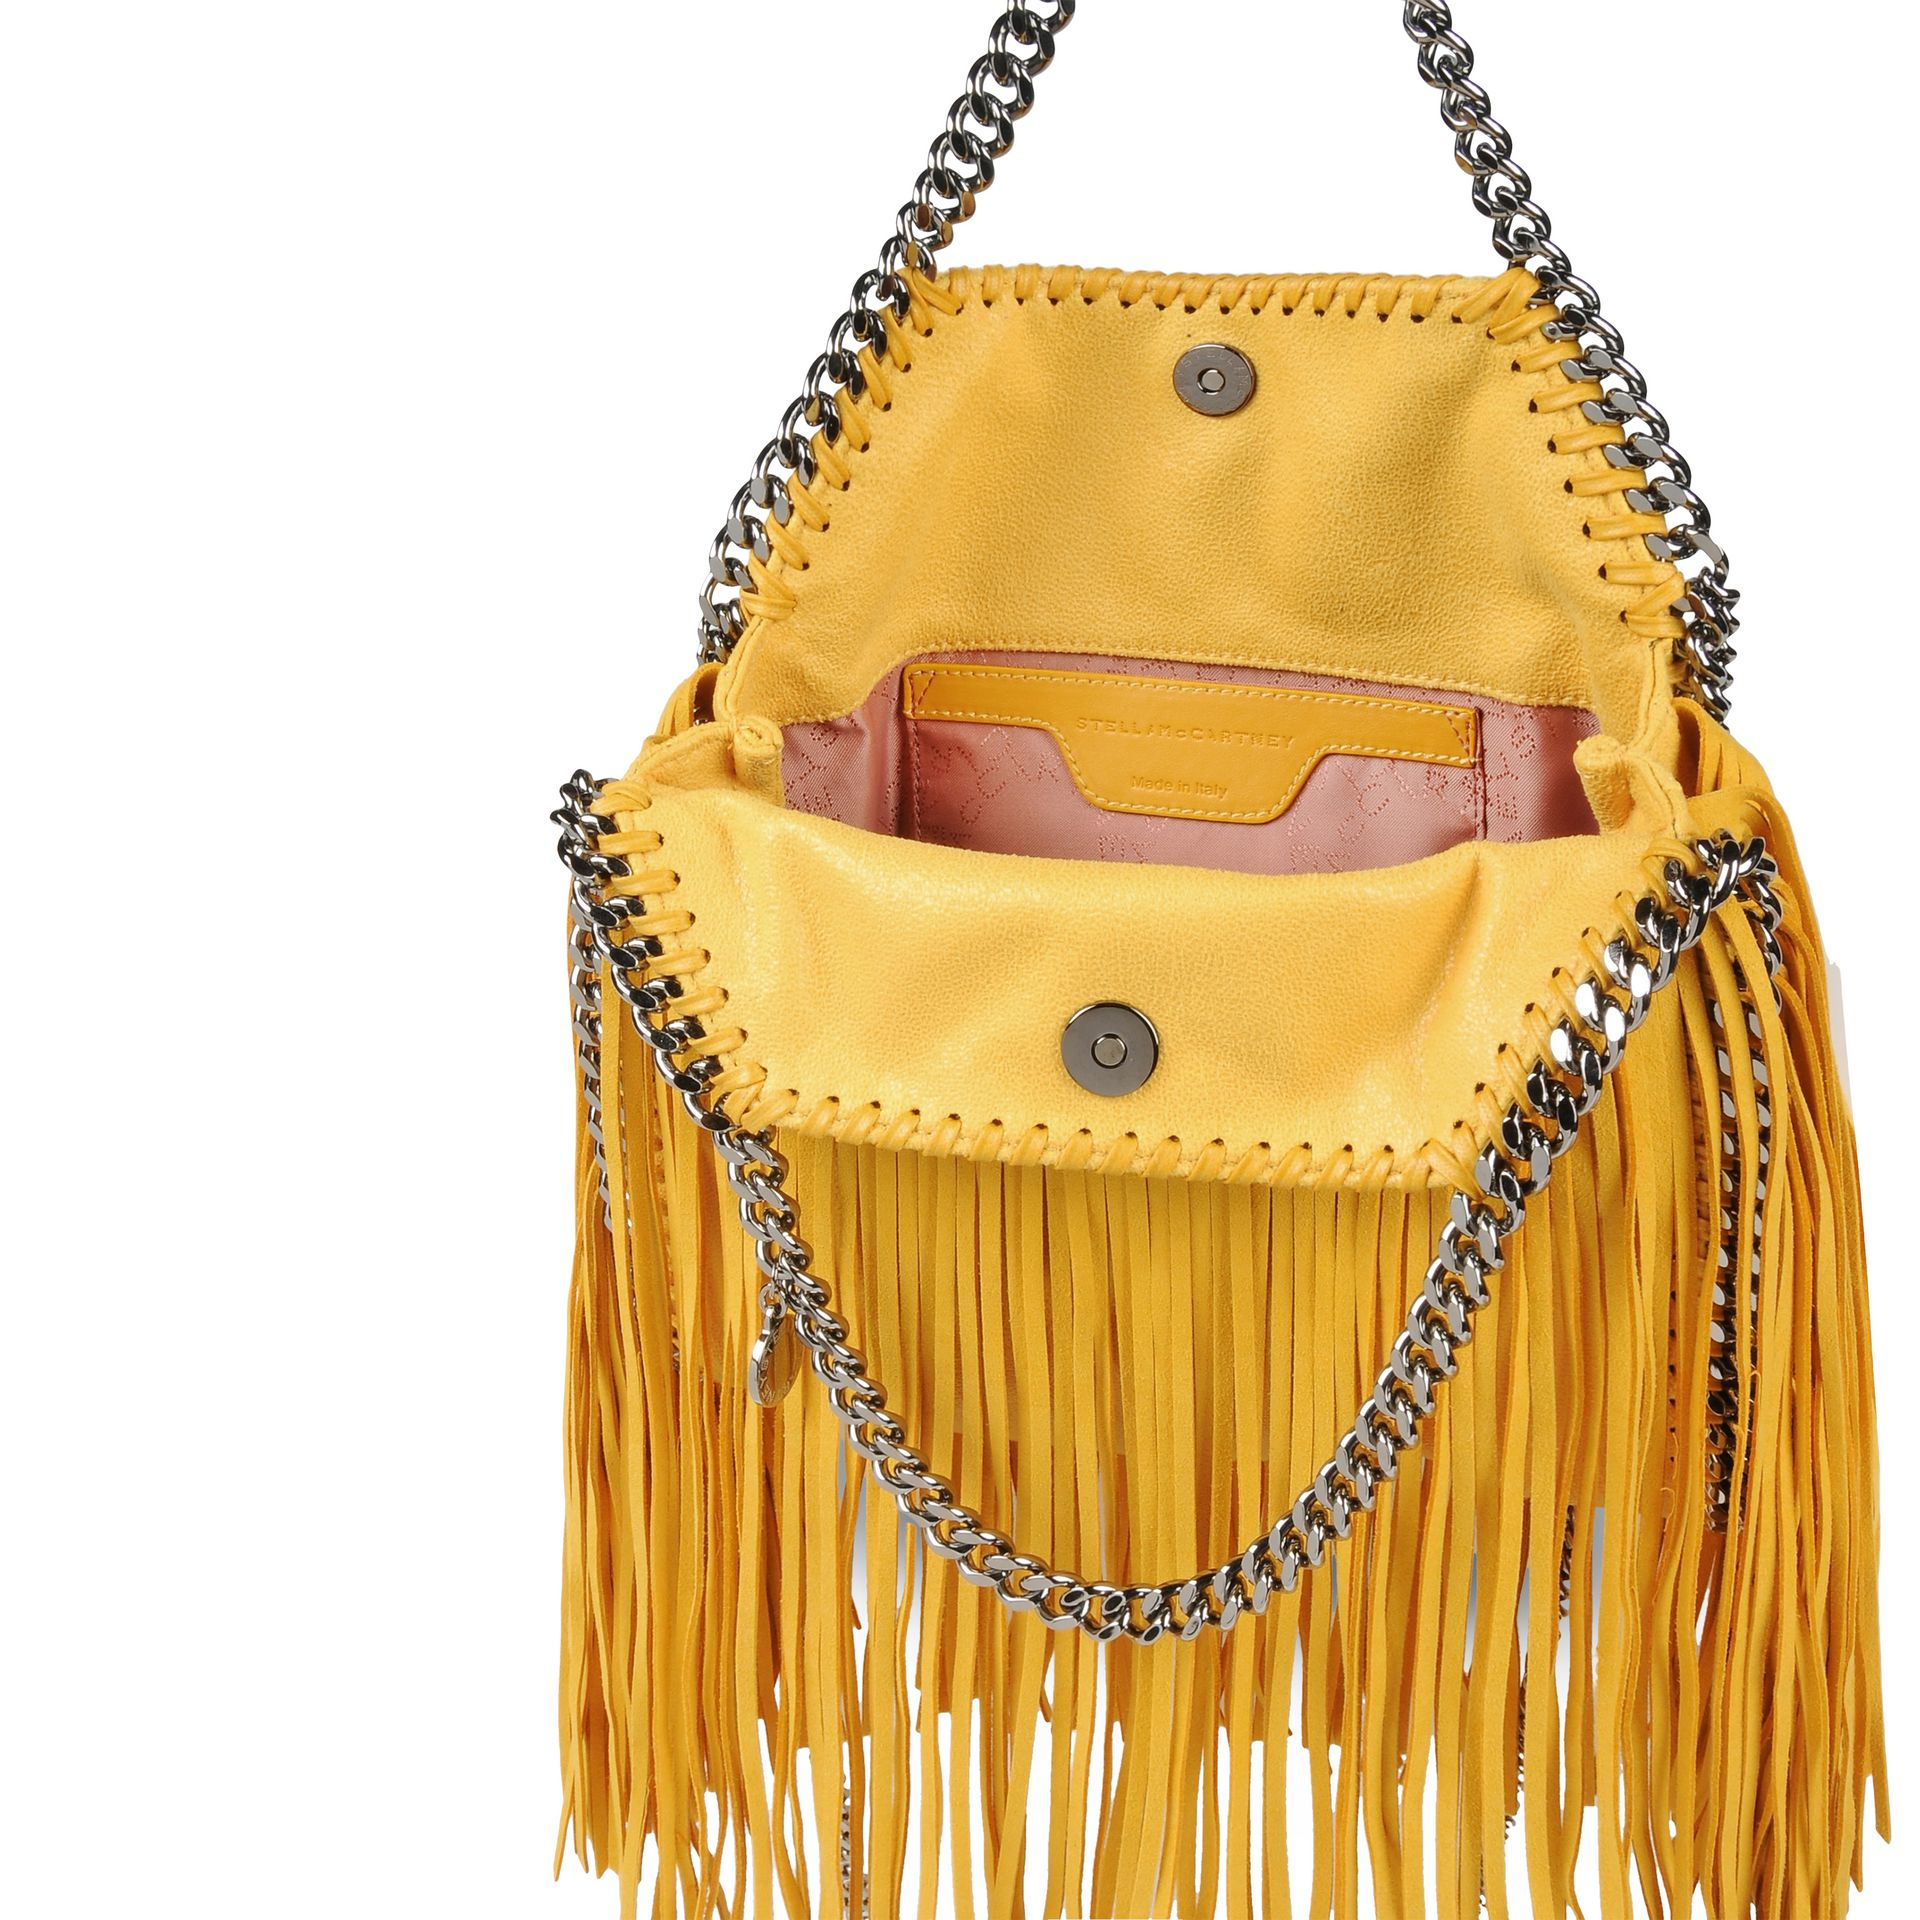 8909a75cd6b5 Lyst - Stella McCartney Falabella Shaggy Deer Fringed Mini Tote in ...